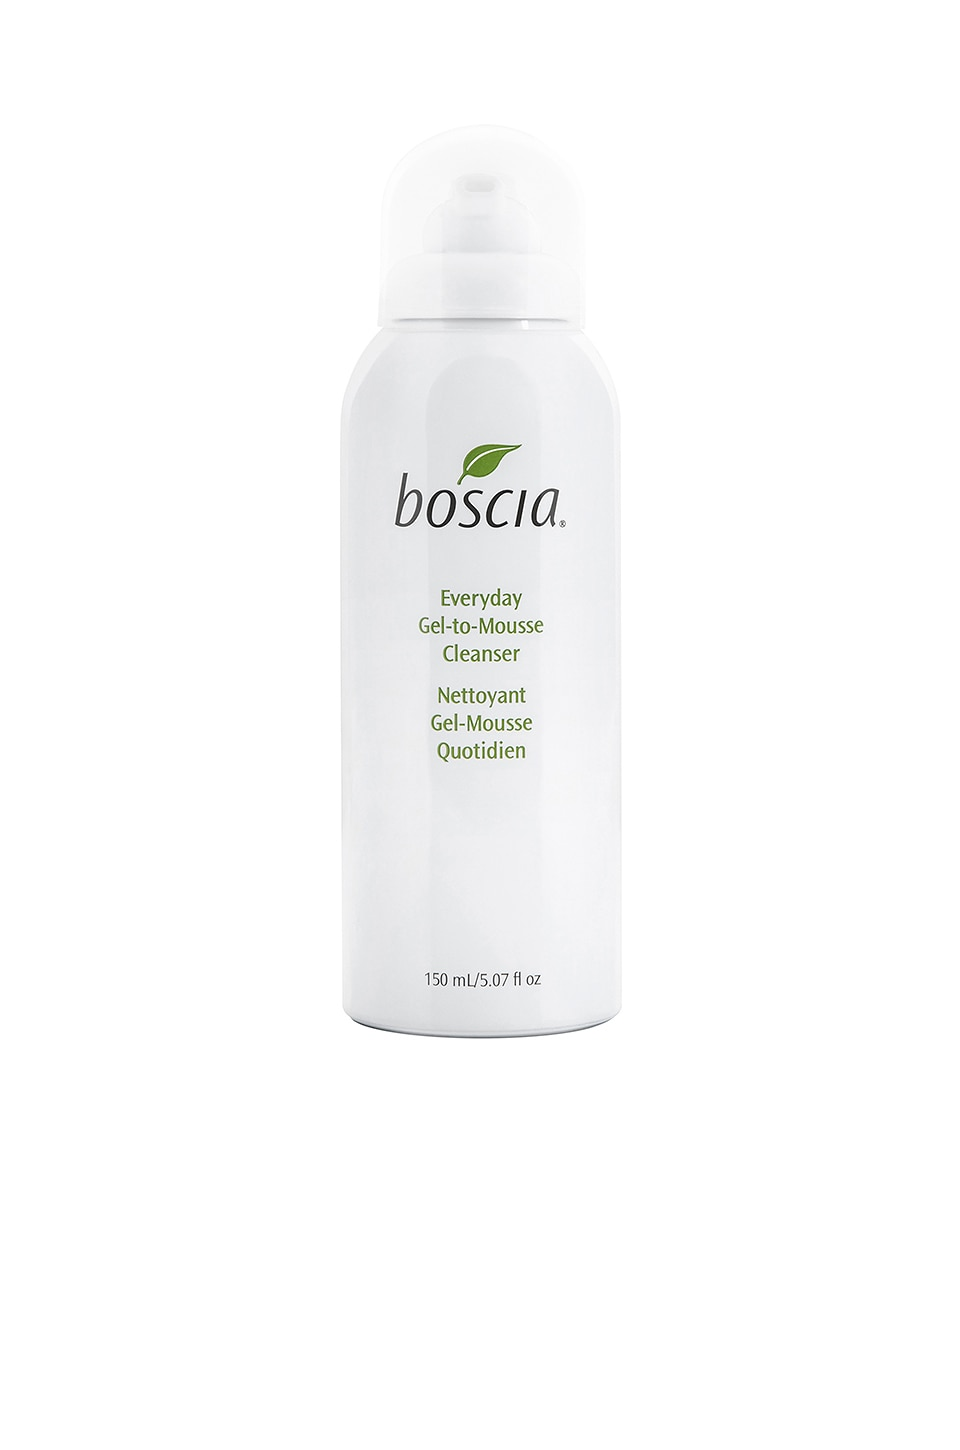 boscia Everyday Gel-to-Mousse Cleanser